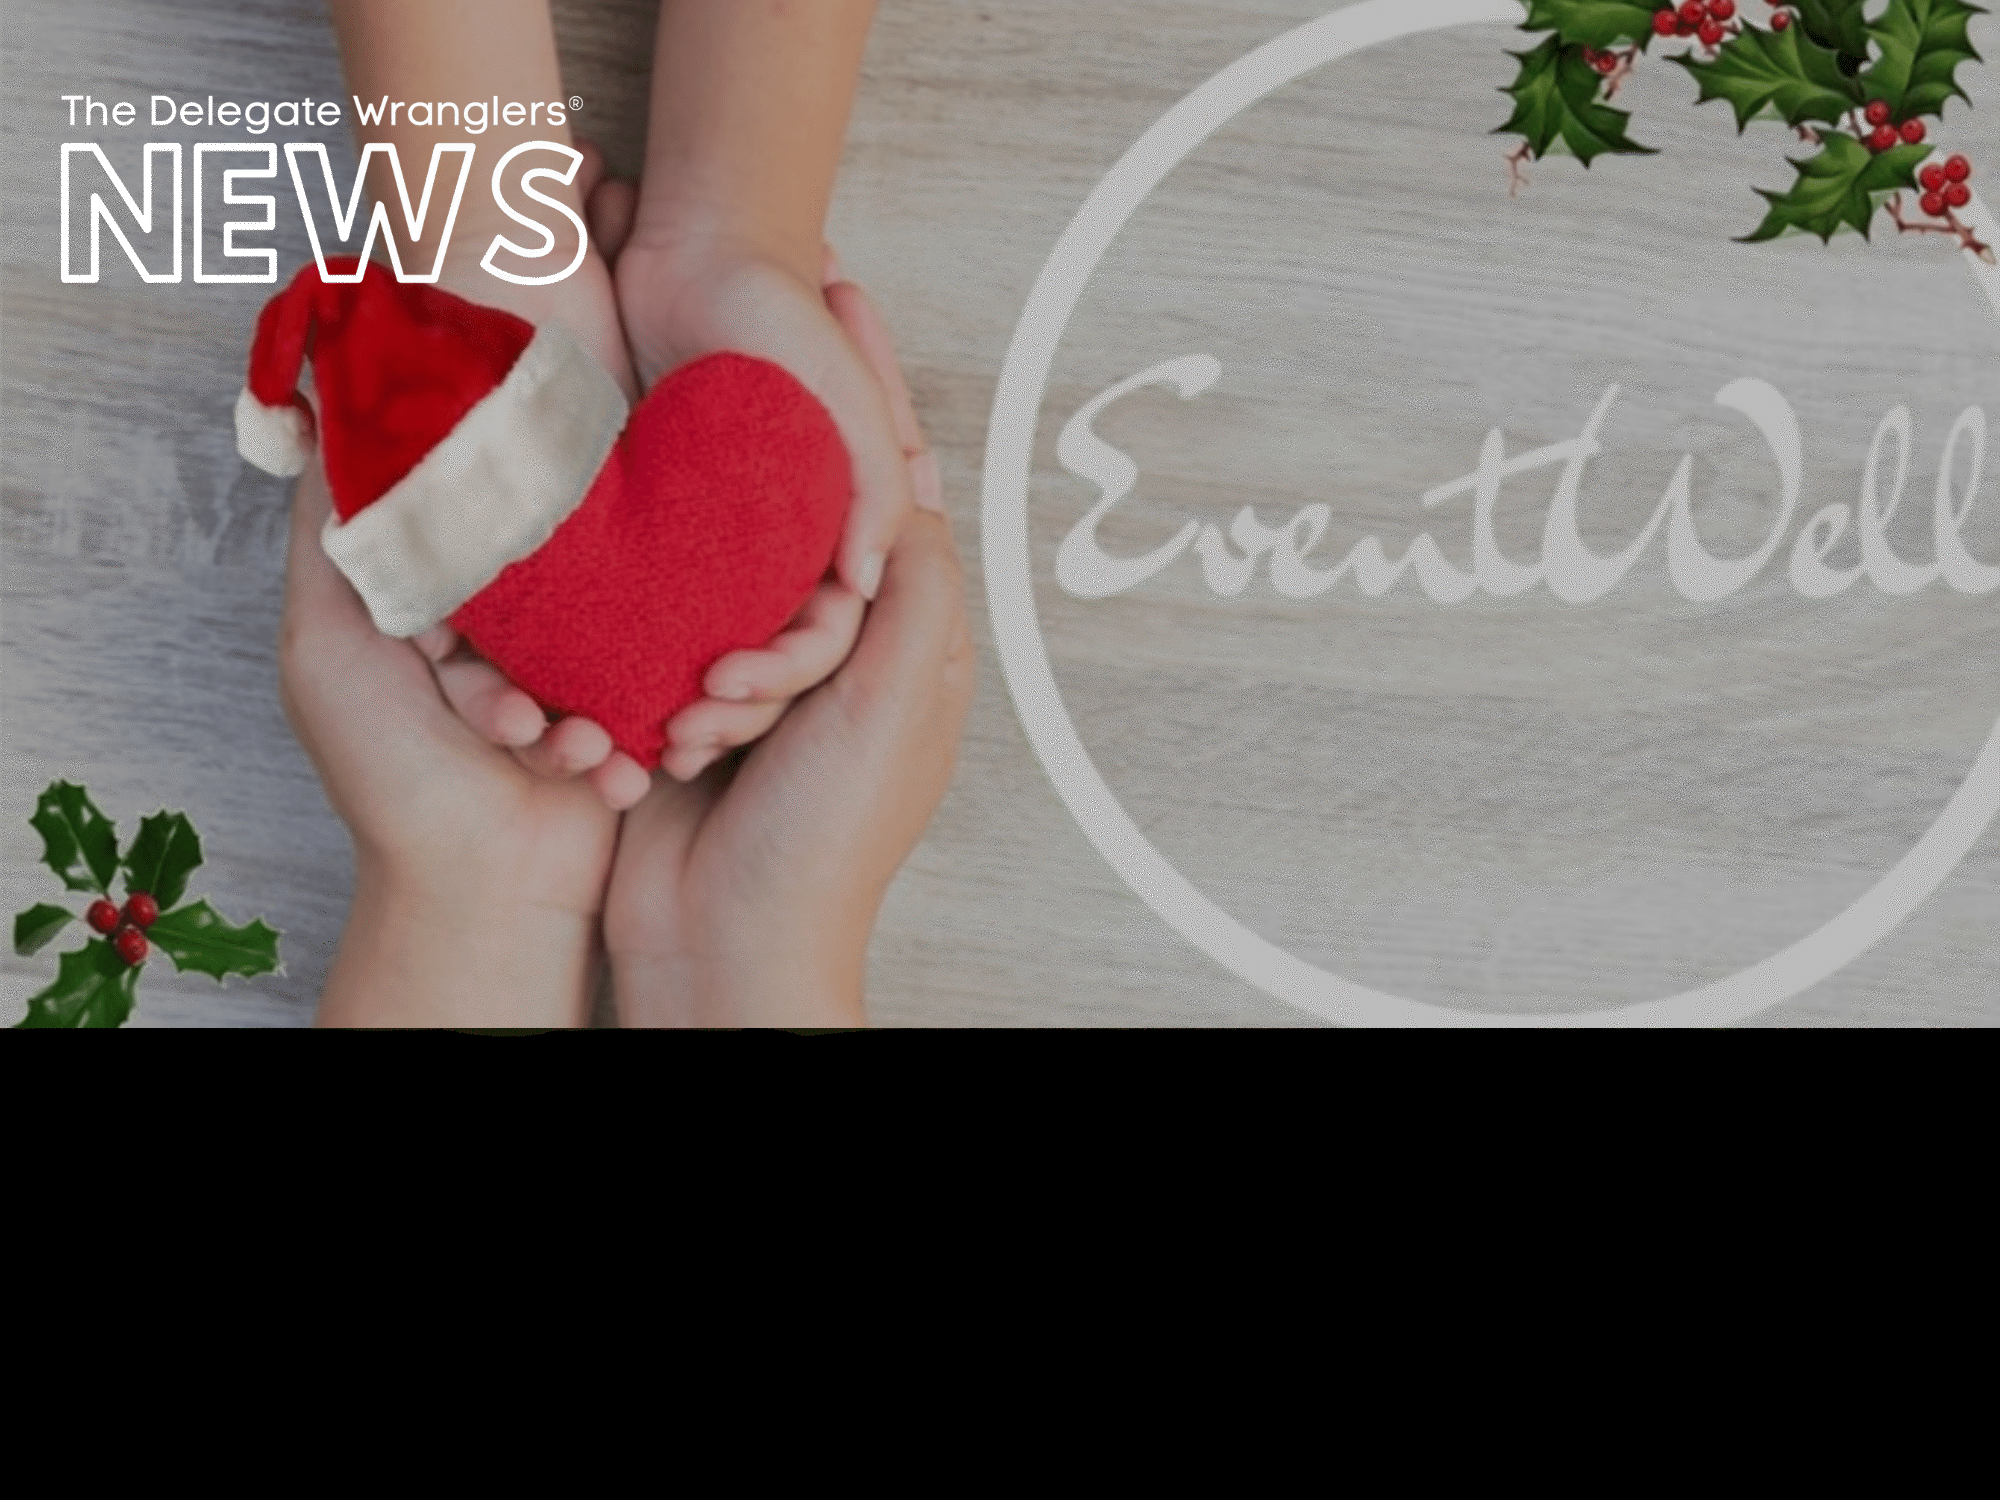 EventWell launches Christmas party appeal campaign to support the events & hospitality sector